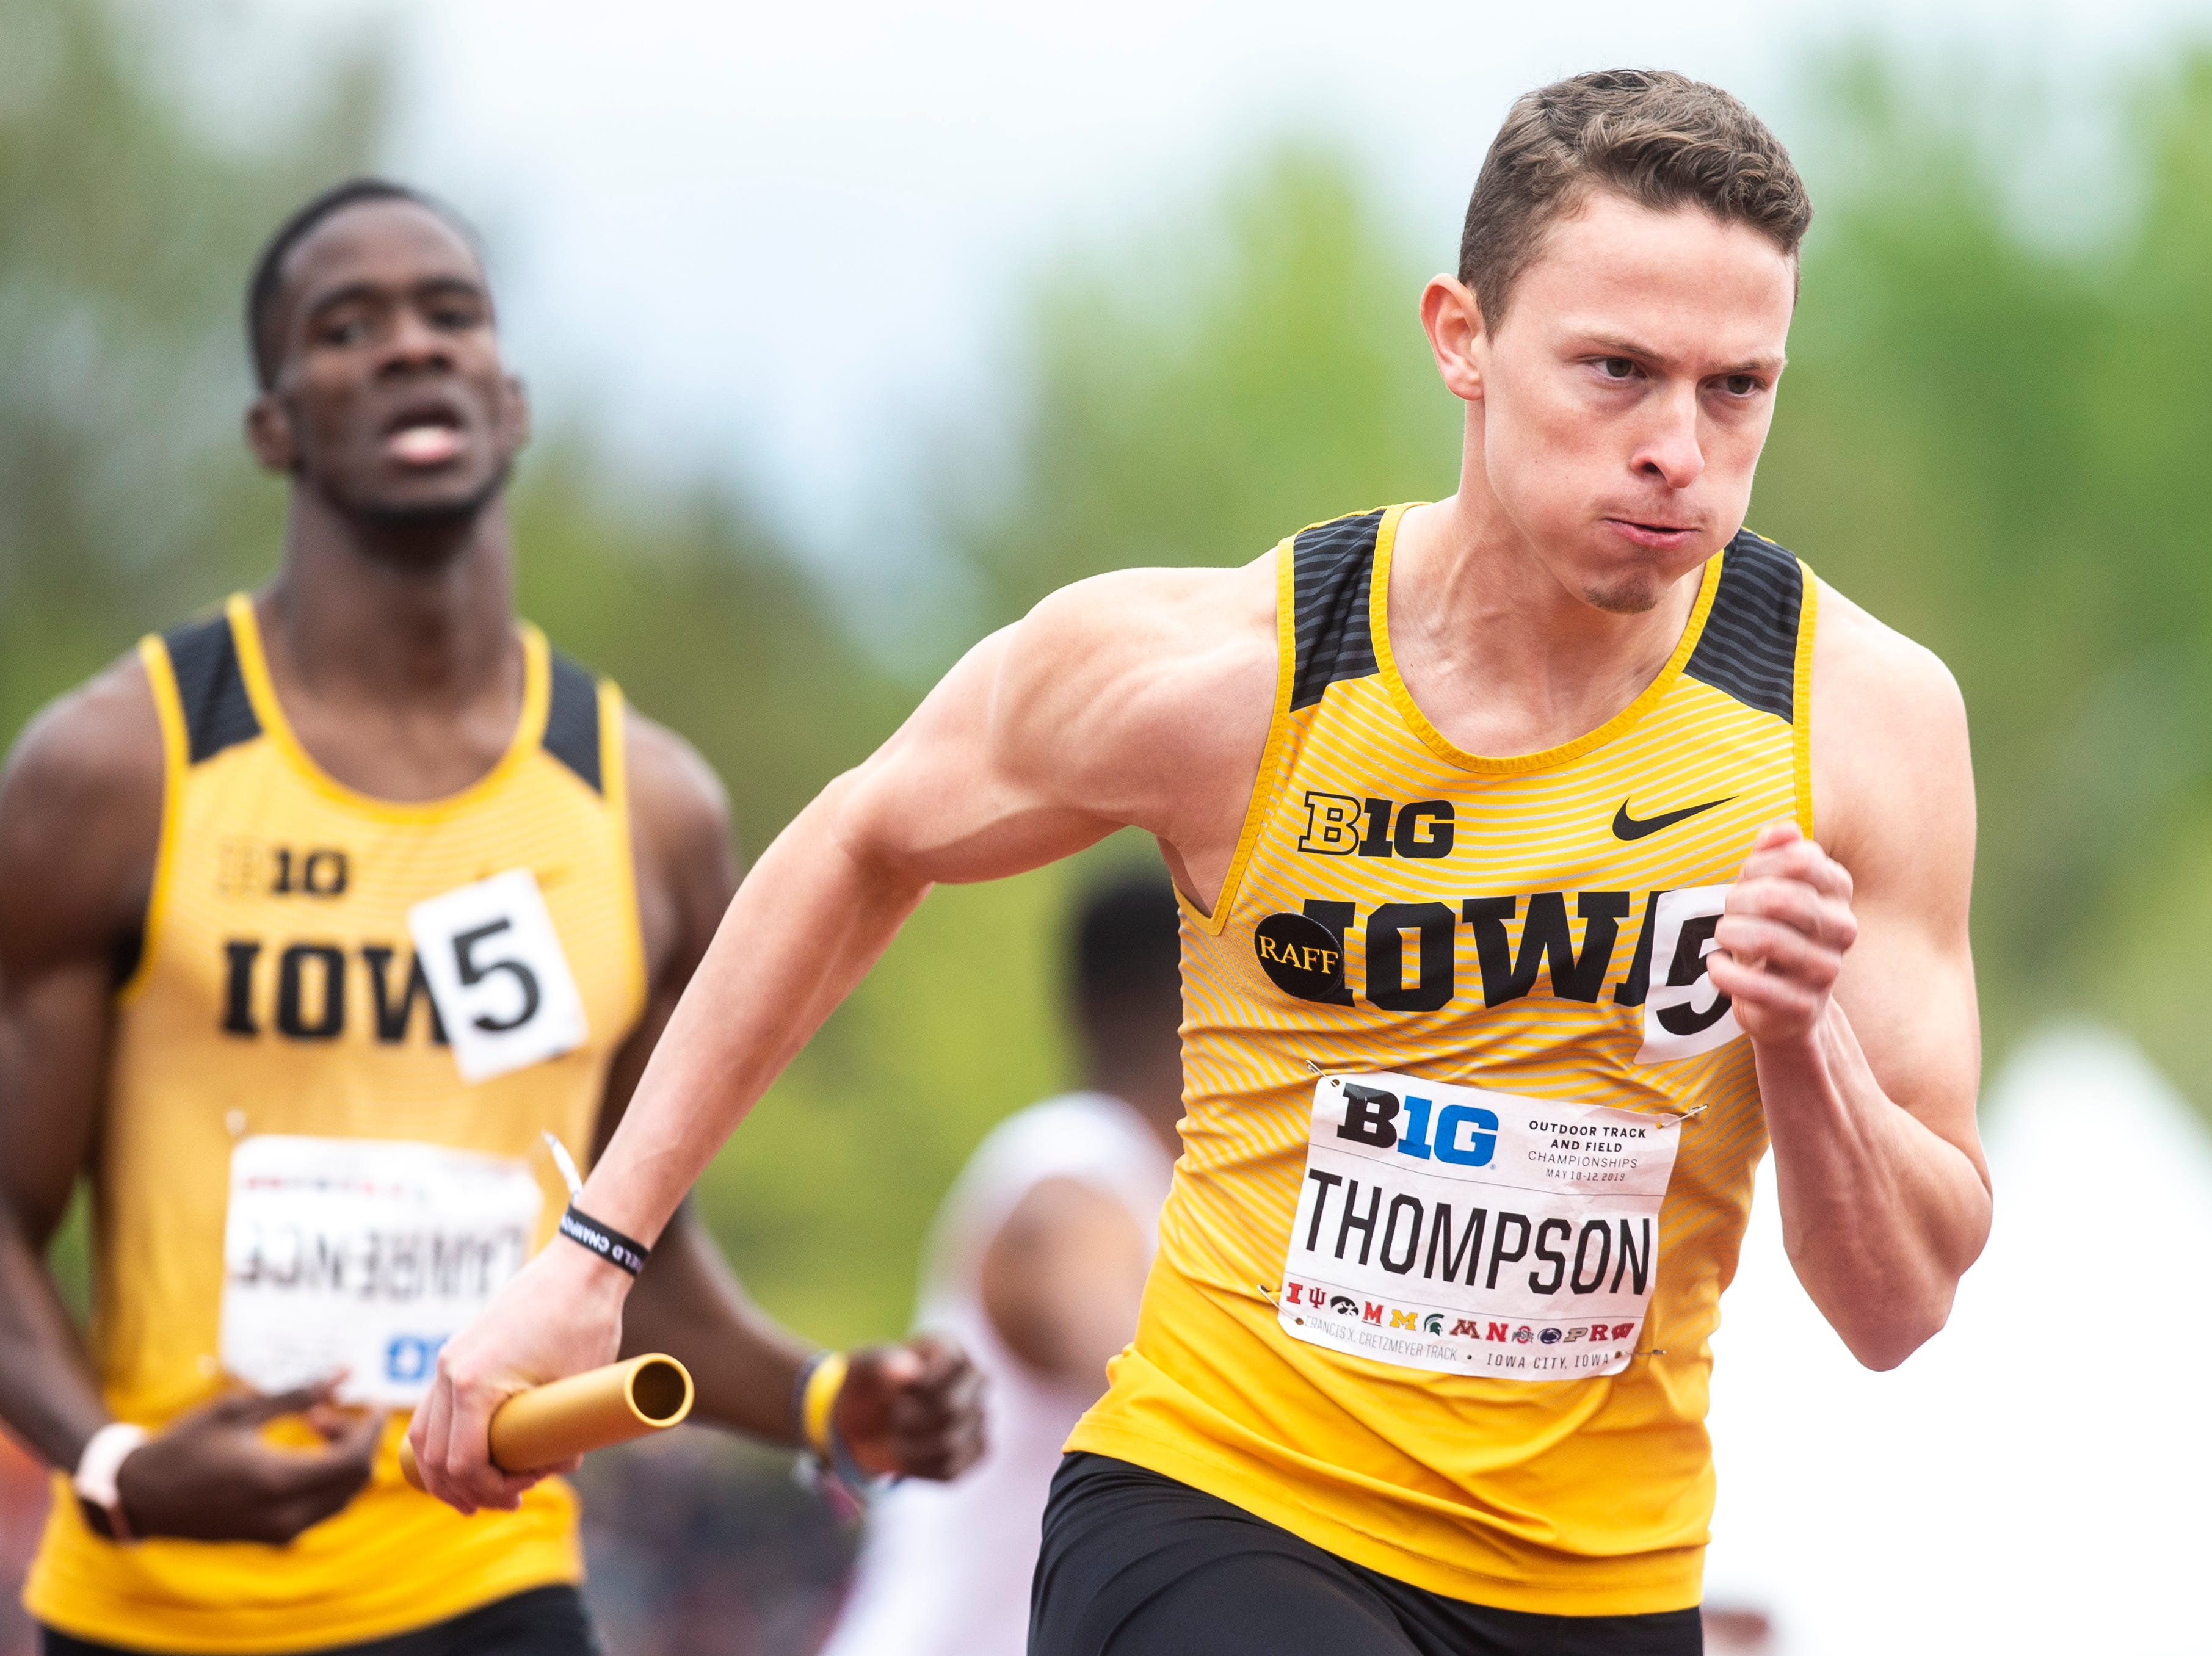 Iowa's Chris Thompson, right, takes a handoff from teammate Wayne Lawrence Jr. while they compete in the 4x400 meter relay during the final day of Big Ten track and field outdoor championships, Sunday, May 12, 2019, at Francis X. Cretzmeyer Track on the University of Iowa campus in Iowa City, Iowa. The Hawkeyes won, with a time of 3:07.36.